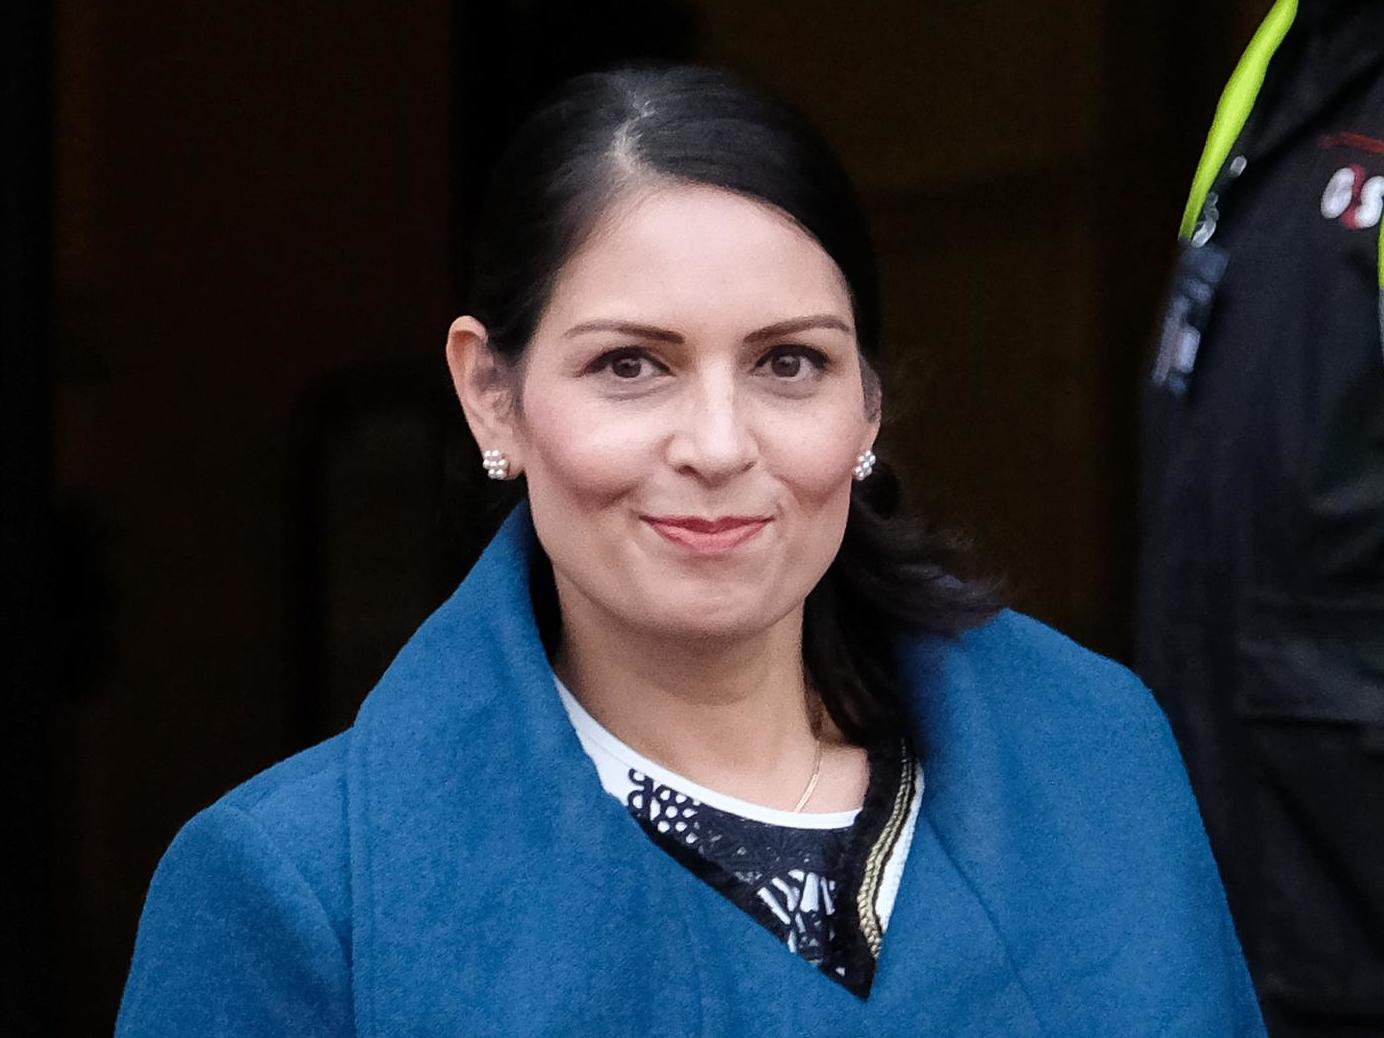 Brexit: Industry bodies representing hundreds of thousands of businesses call on Priti Patel to lower minimum wage for migrant workers